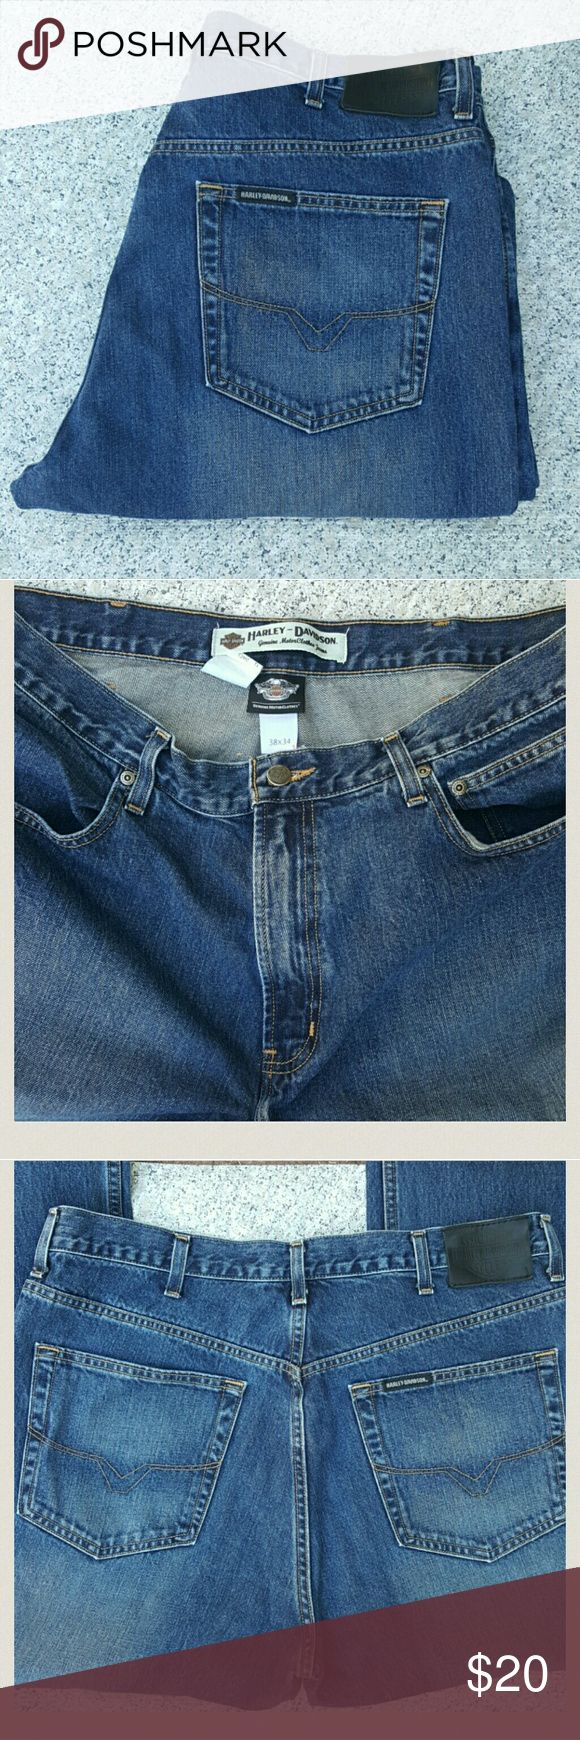 Genuine Harley Davidson Jeans Excellent condition, they look practically new!! Genuine Harley Davidson, 100% cotton features a dark slightly tinted wash with distressed sandblasting on thighs. Slight taper to the ankle and still fits nicely over your riding boots. 38×34 classic 5 pocket style jeans sits at the natural waist, slimmer fit through seat and thighs. Embossed Bar & Shield leather patch at back waist.      These jeans are in great condition and comes from a smoke free home…